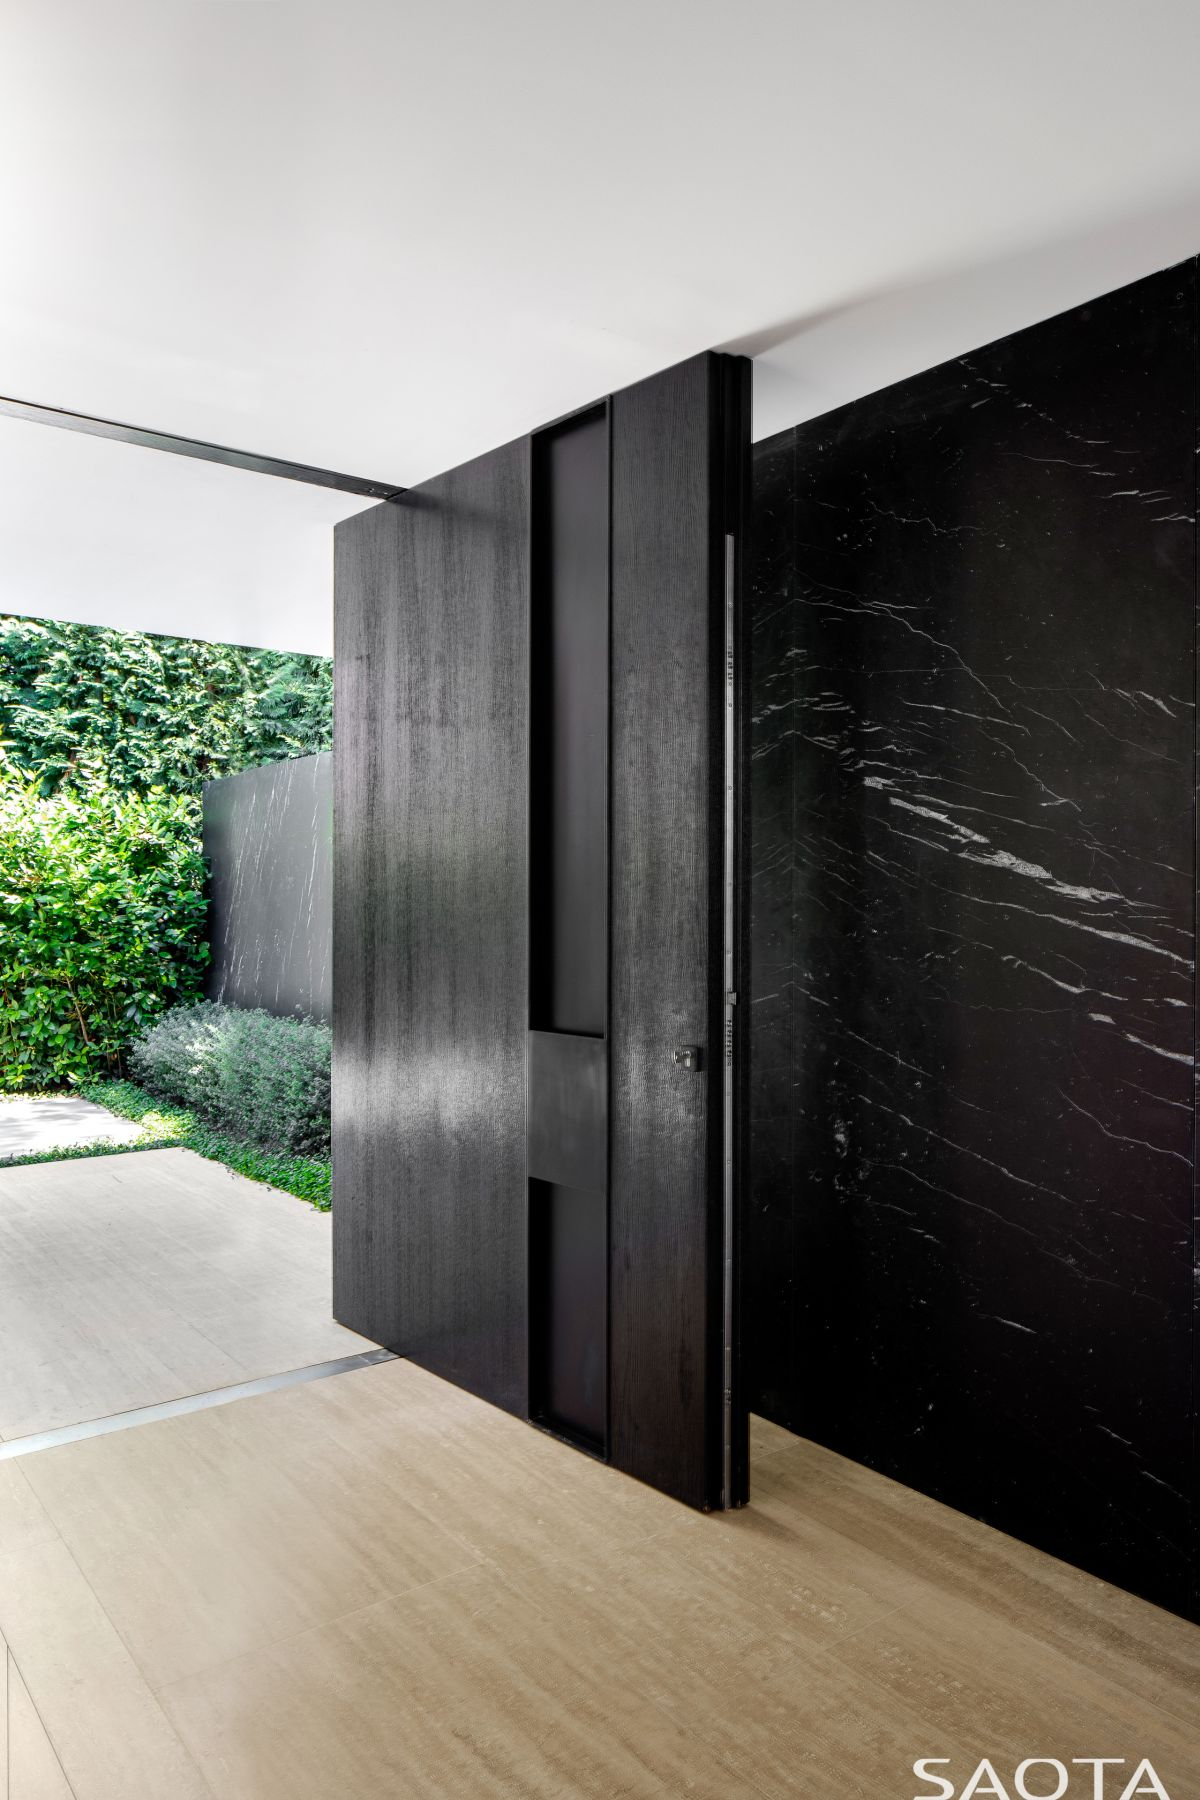 The main entrance is defined by a large and solid pivot door which contrasts with the white walls around it